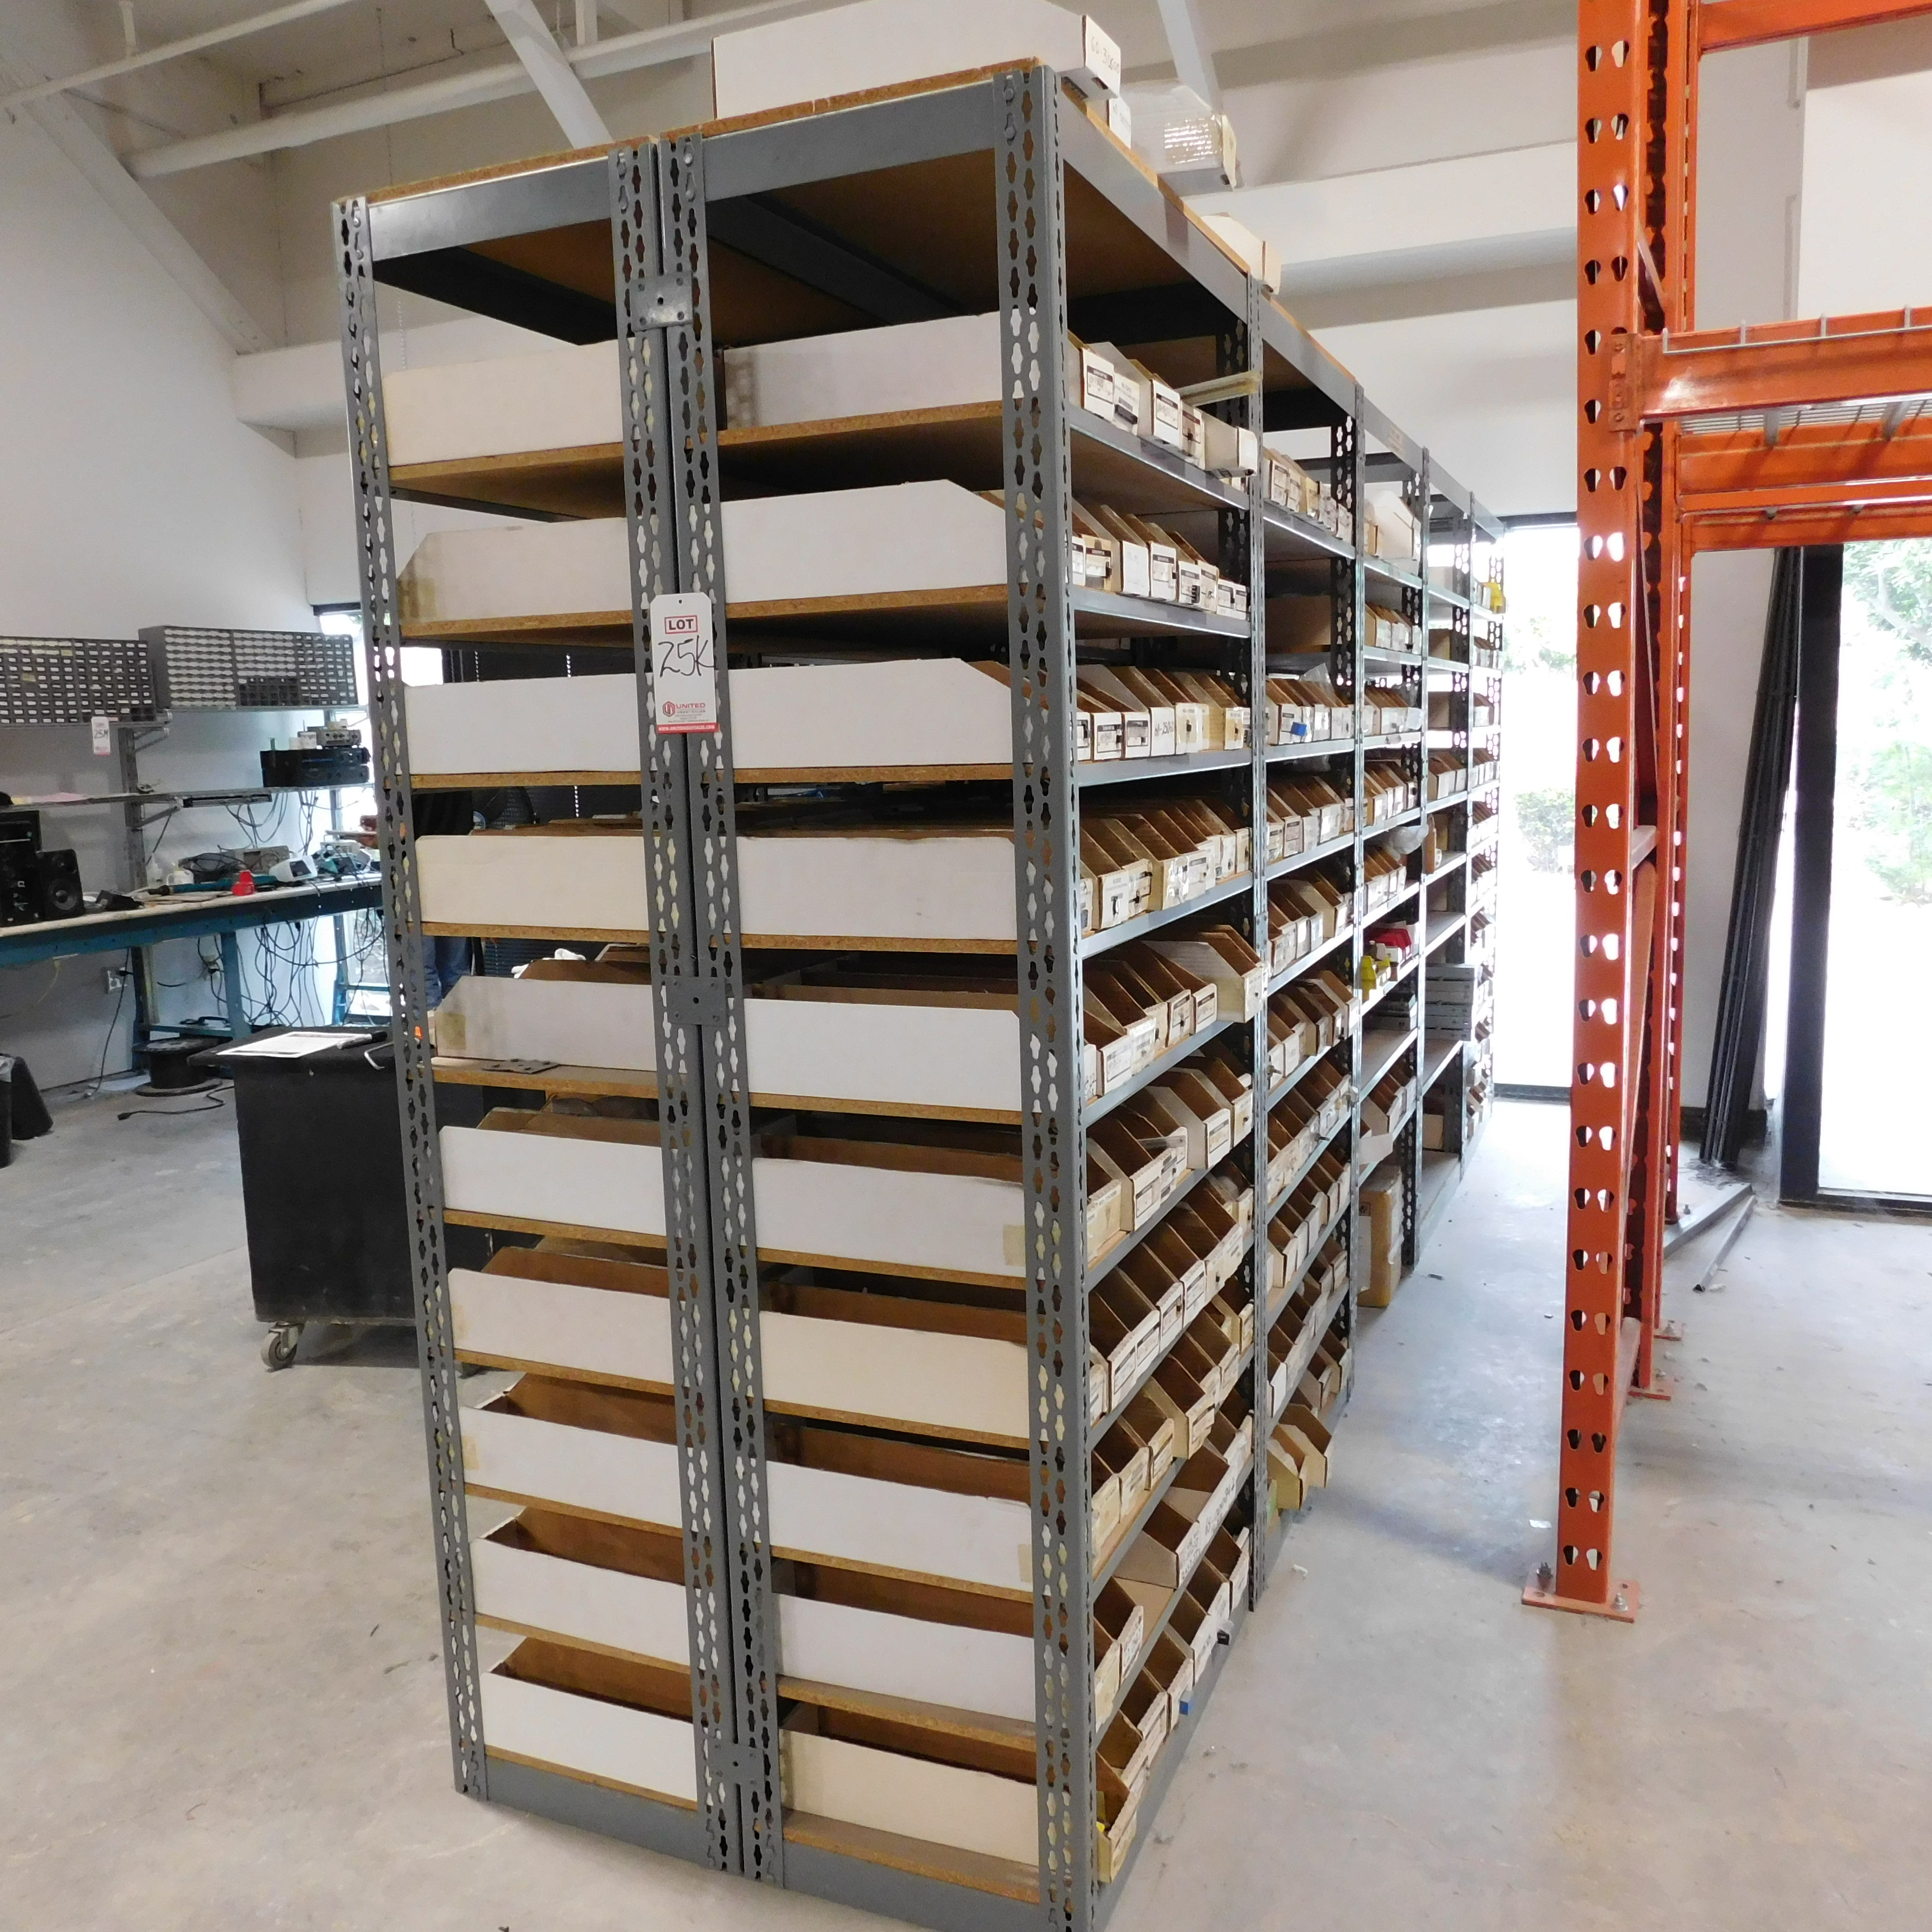 Lot 25K - 30' OF SHELVING CONTAINING ELECTRONIC PARTS AND COMPONENTS